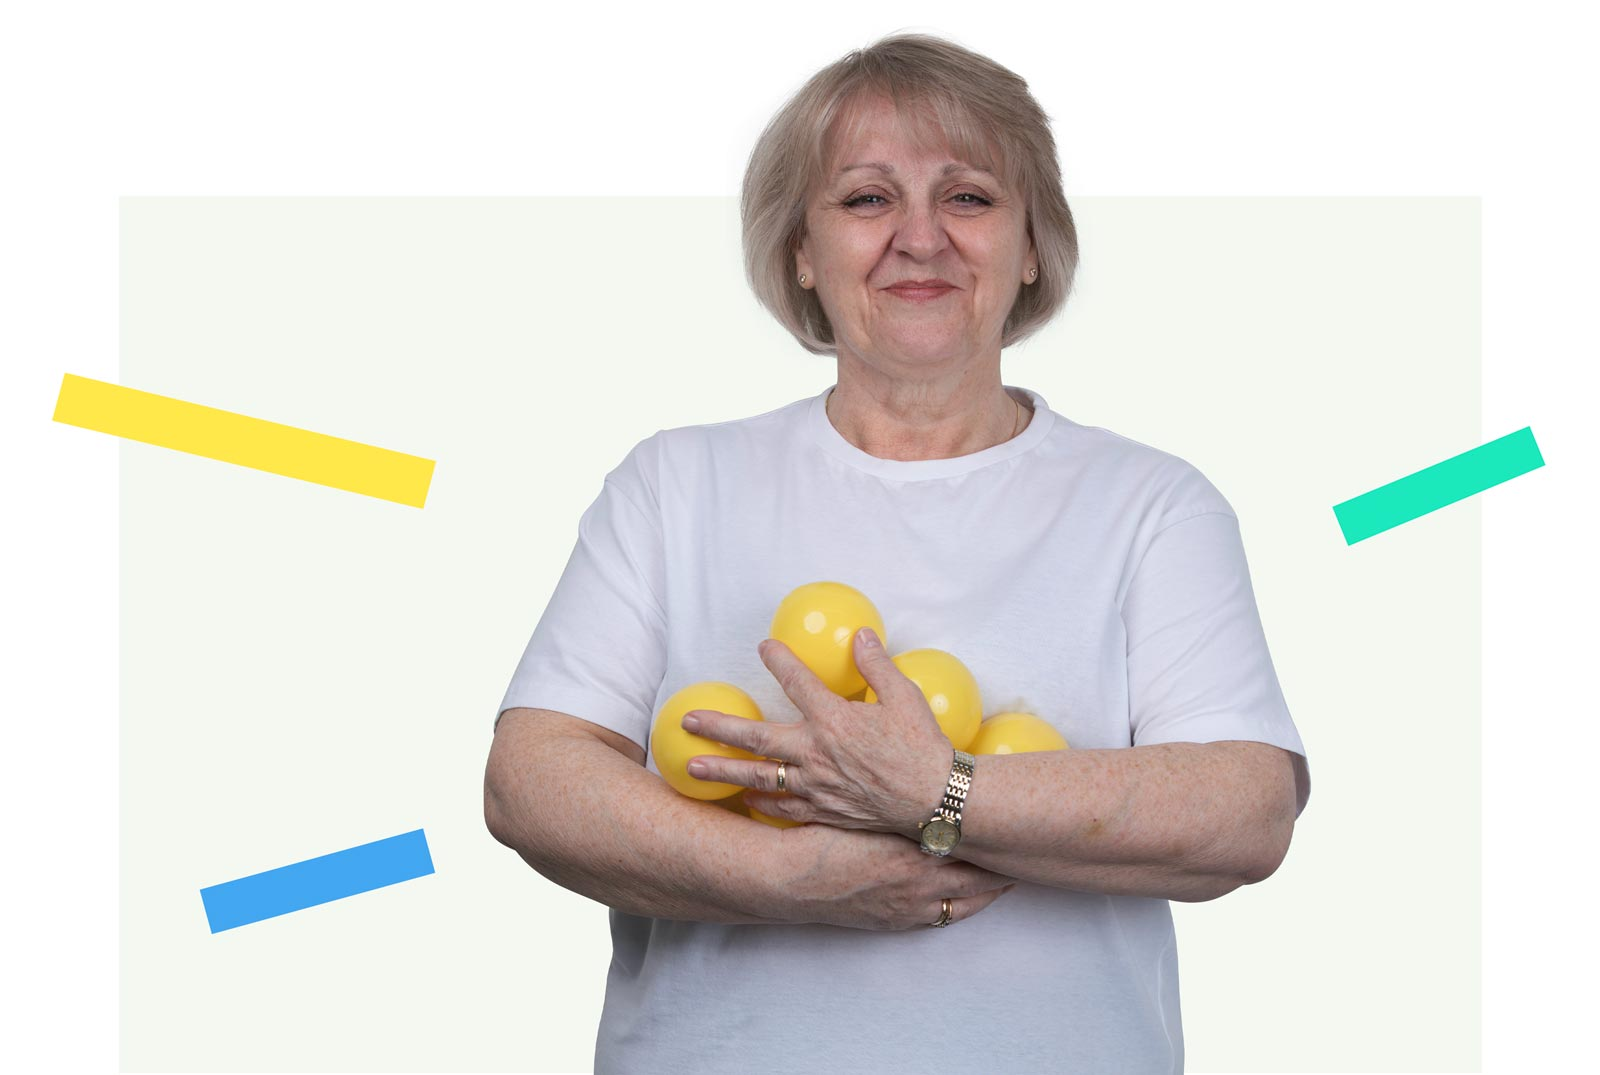 A photo of a blonde woman holding yellow balls and looking pleased.